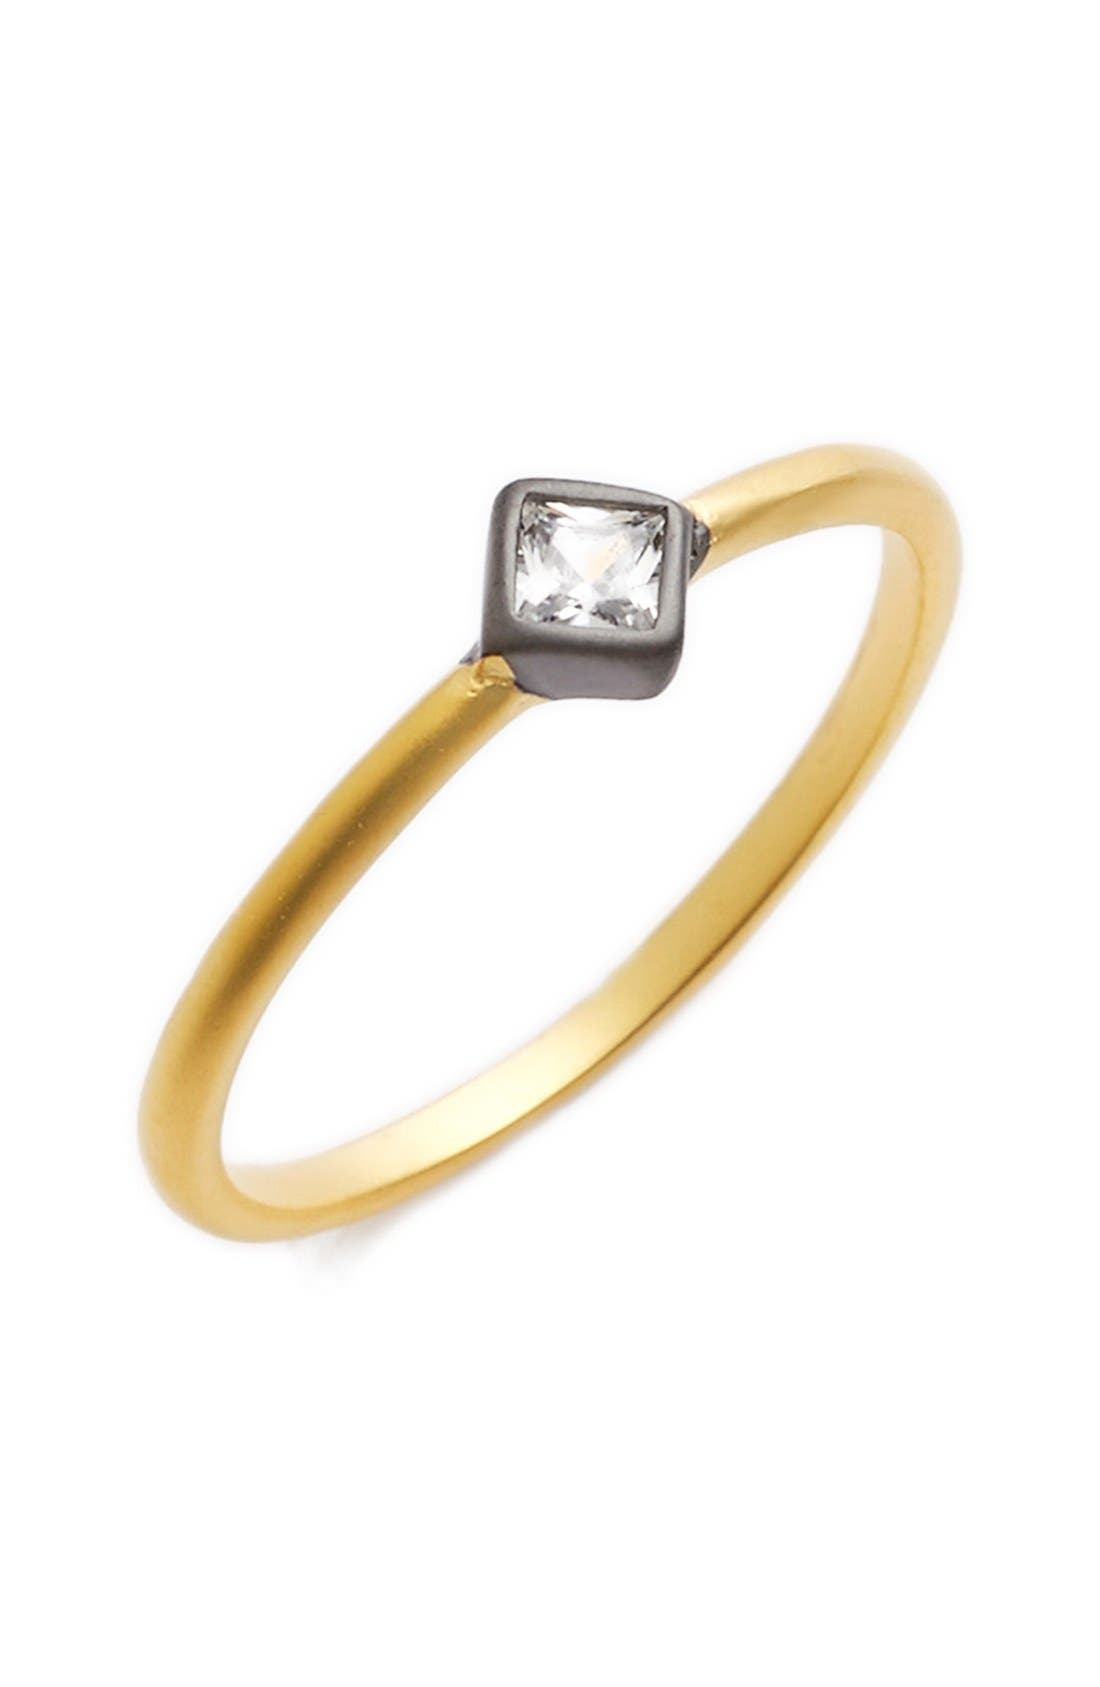 'Double Helix' Stackable Bezel Ring,                         Main,                         color, Gold/ Black